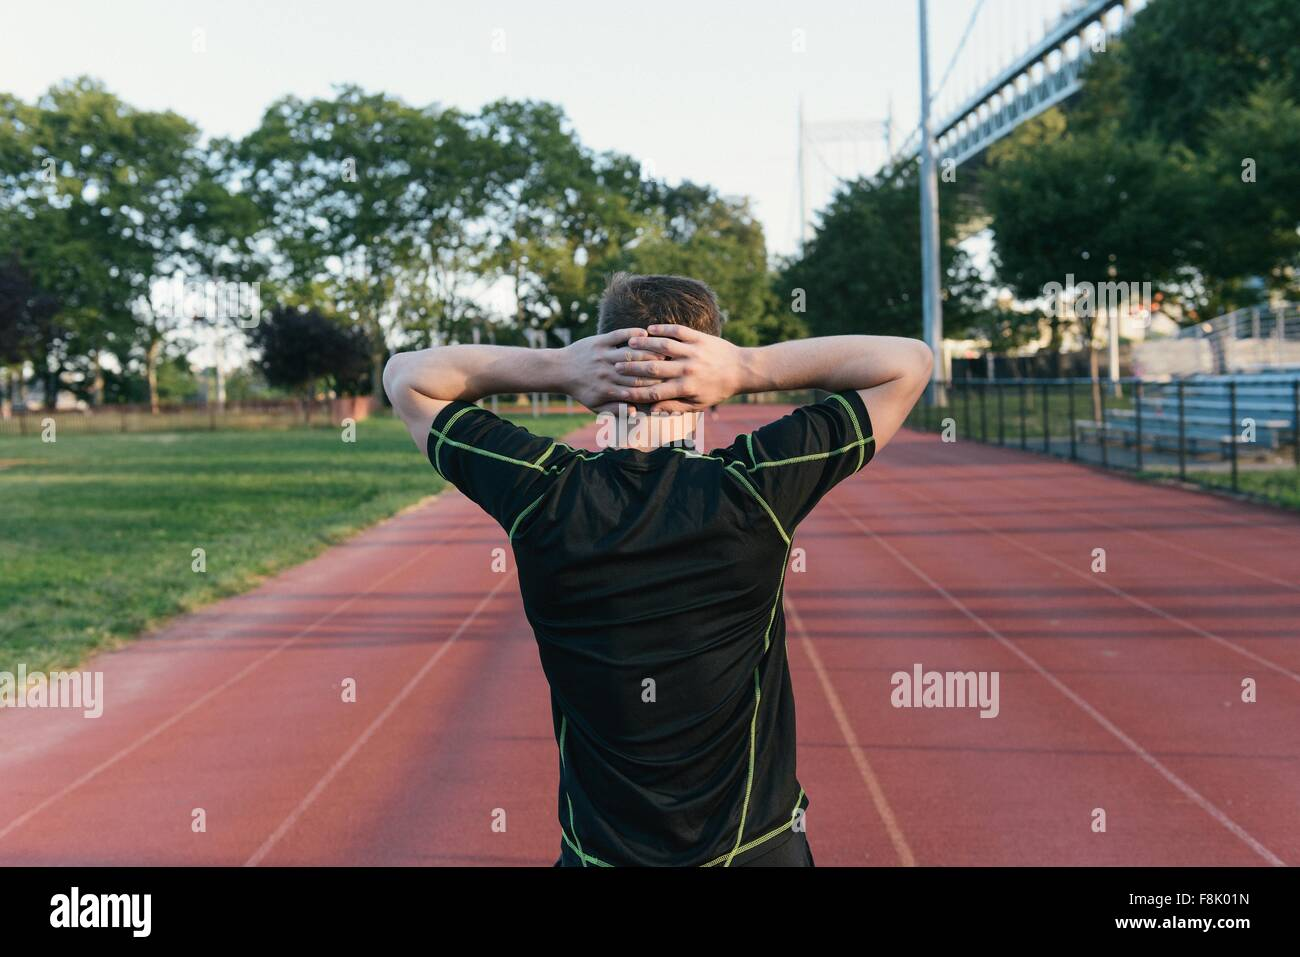 Young man on sports track, hands behind head, rear view - Stock Image